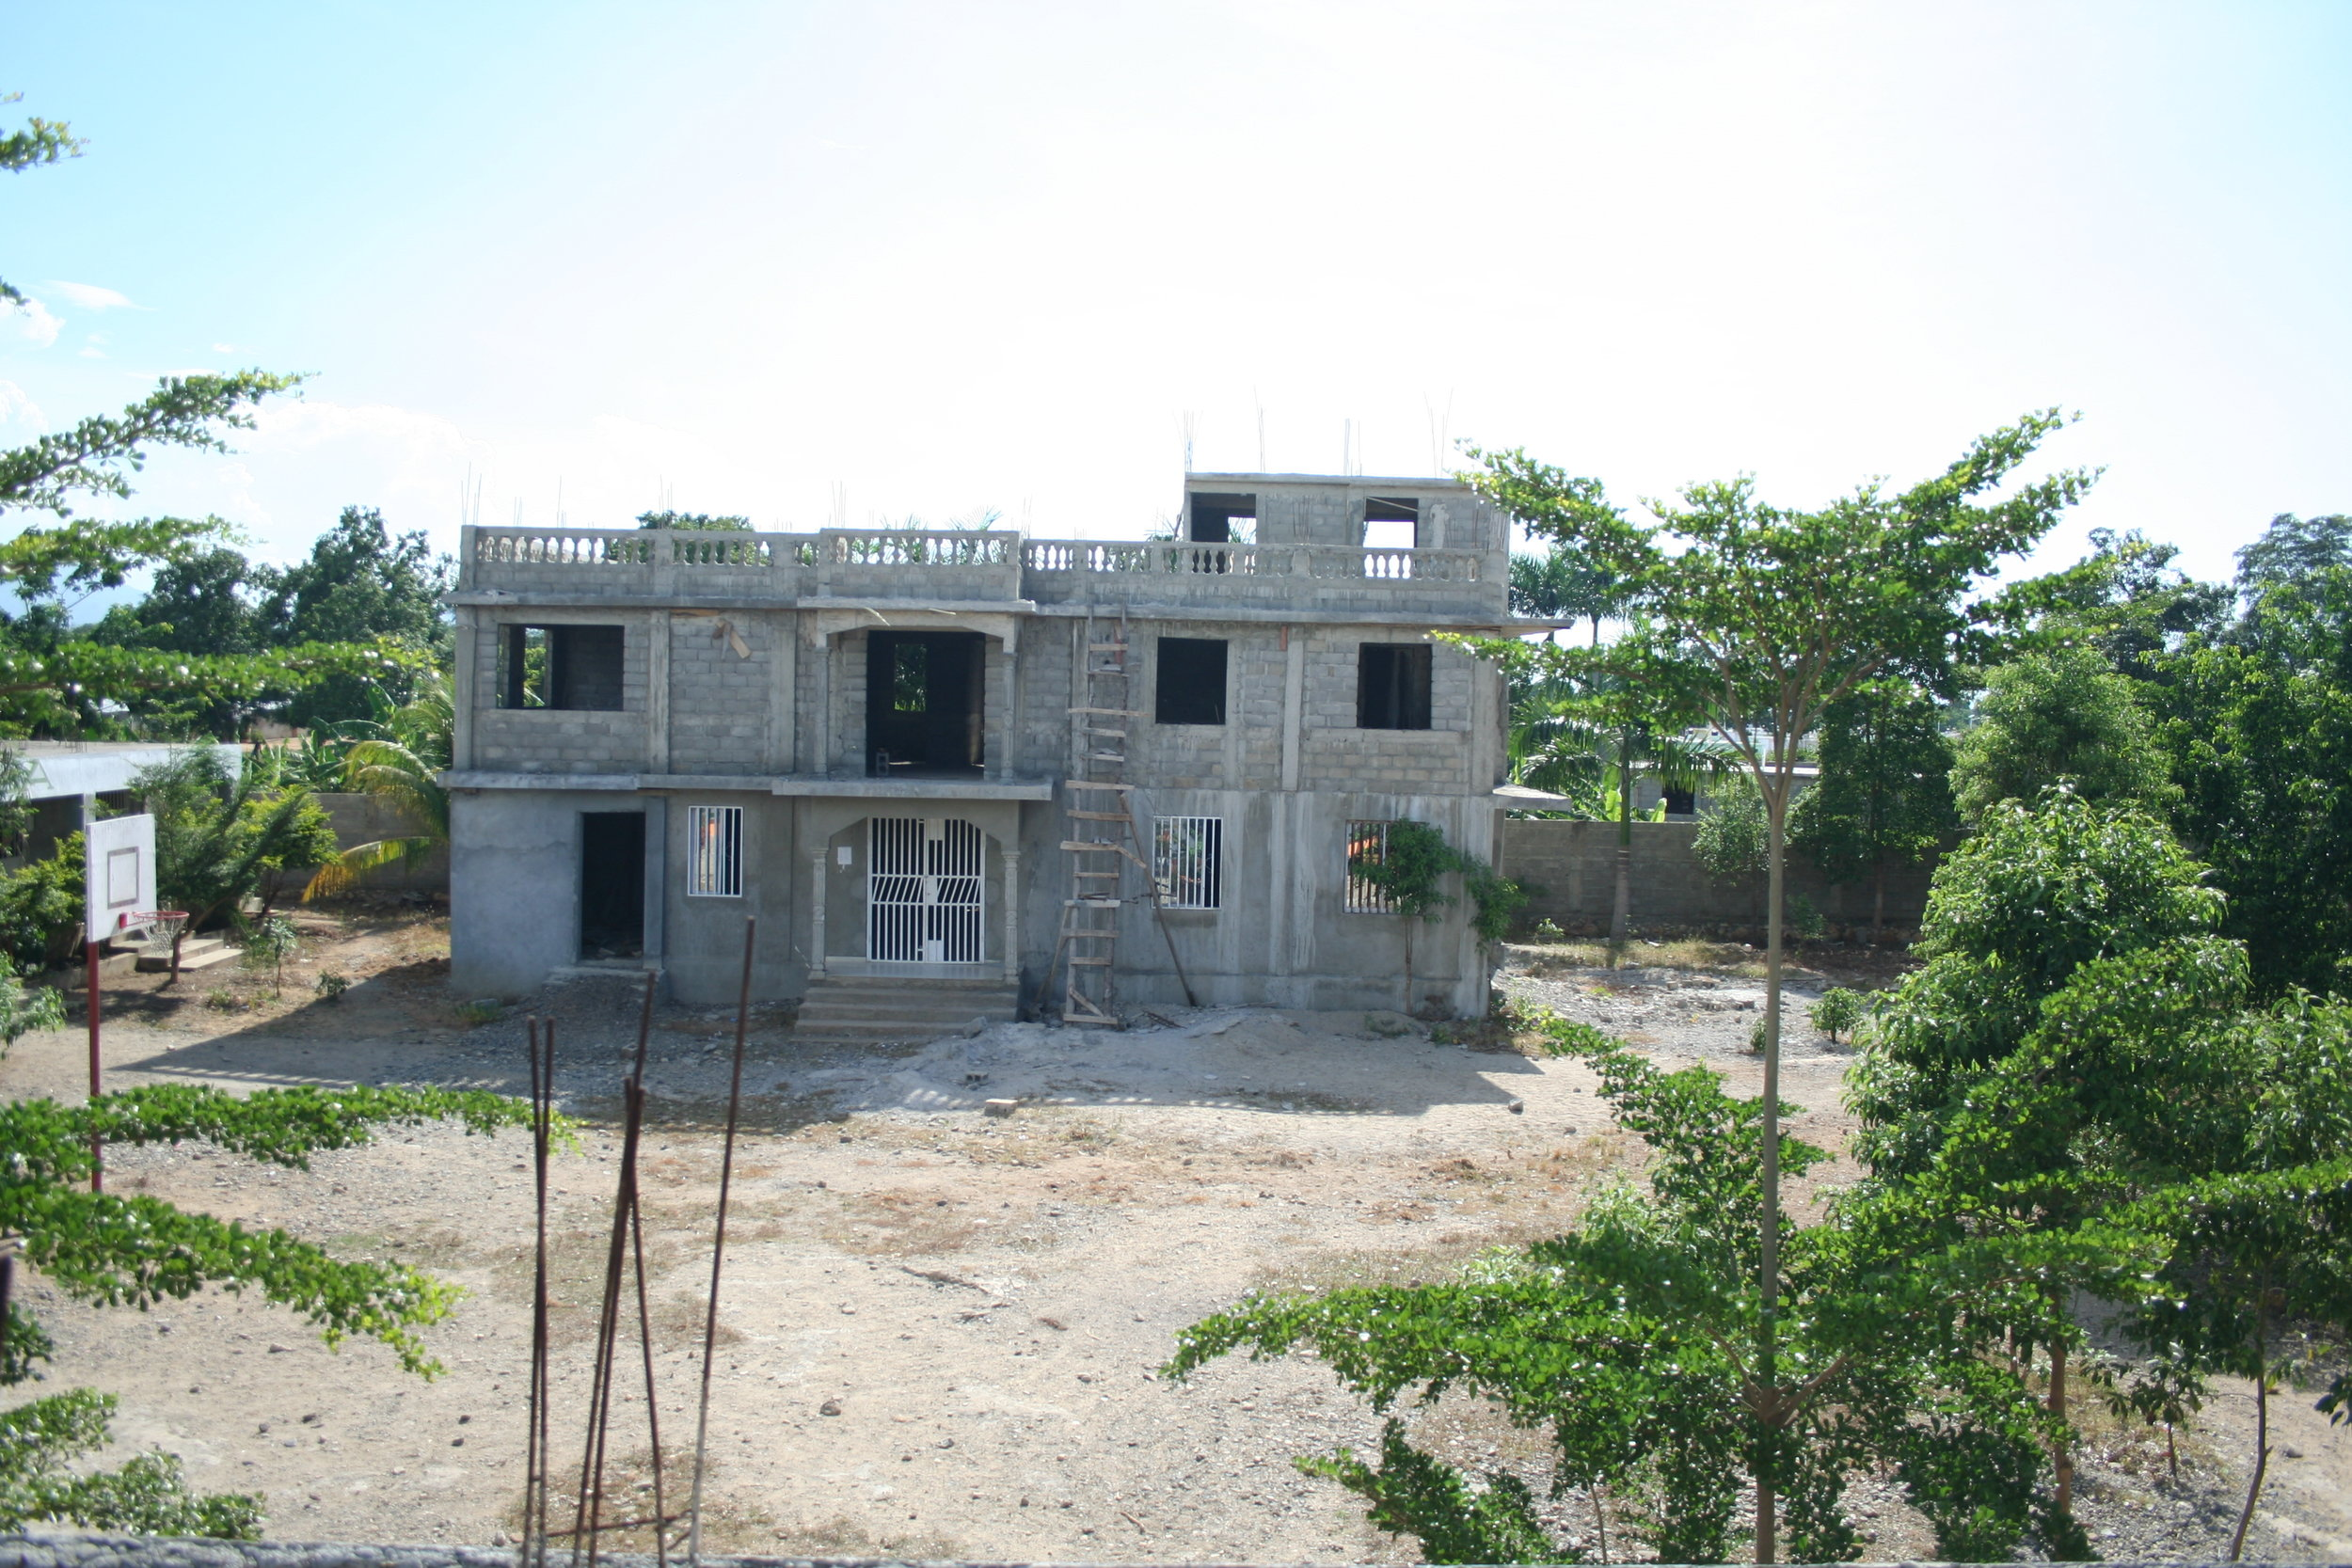 Secondary Construction on School